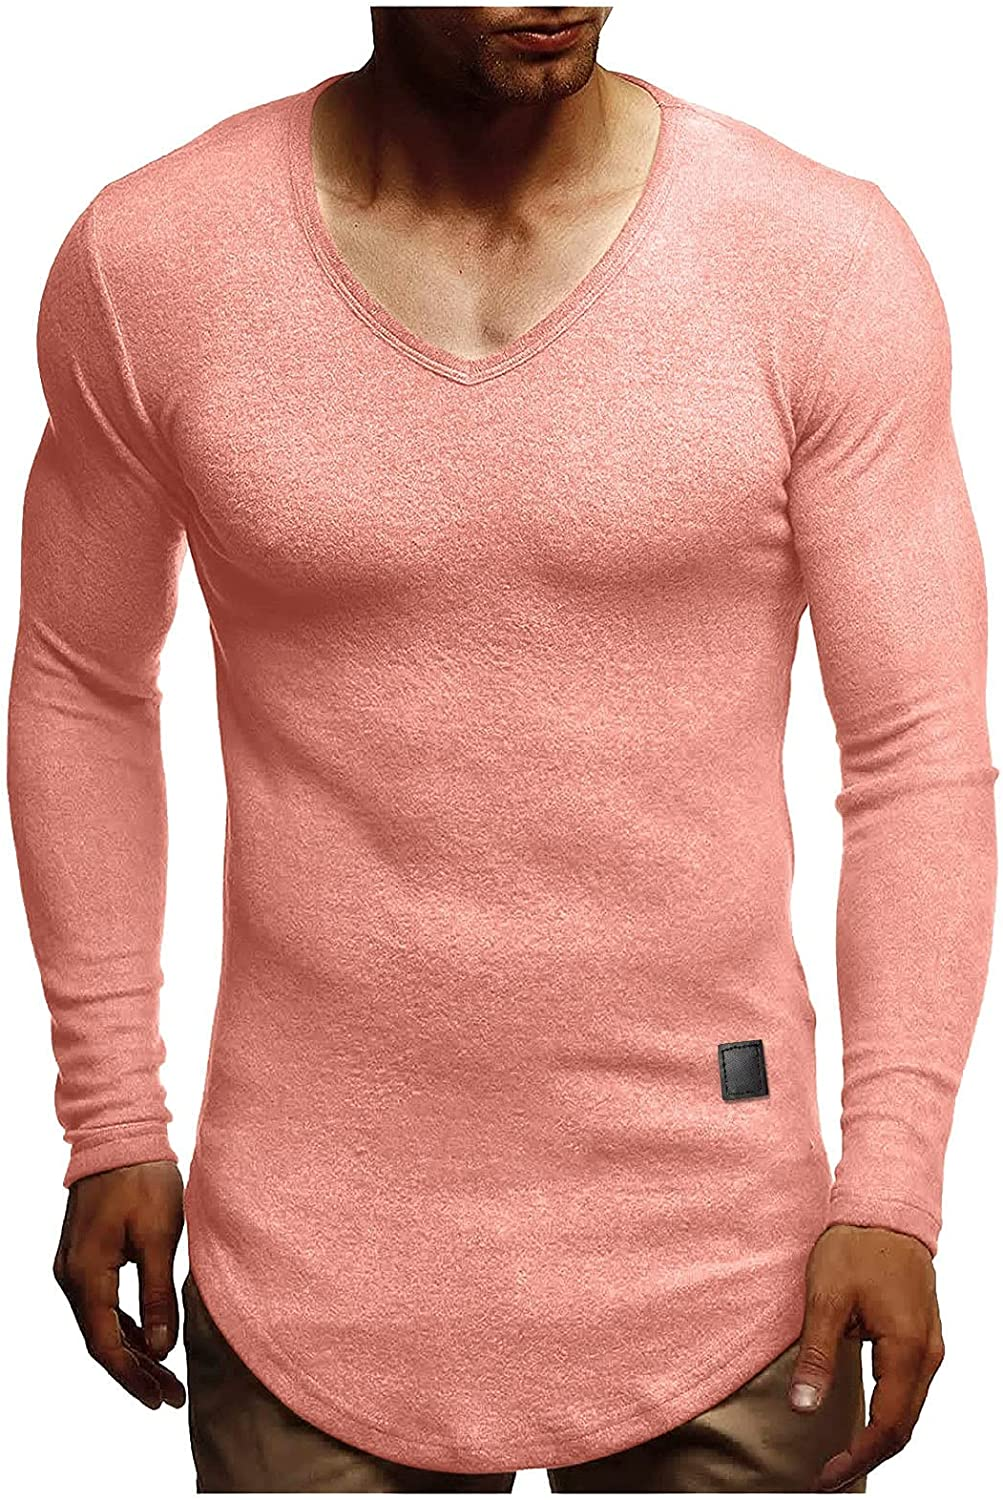 Mens Thermal Long Sleeve Shirts Cotton Cashmere Fleece T-Shirts V Neck Casual Basic Tees Big and Tall Slim Tops